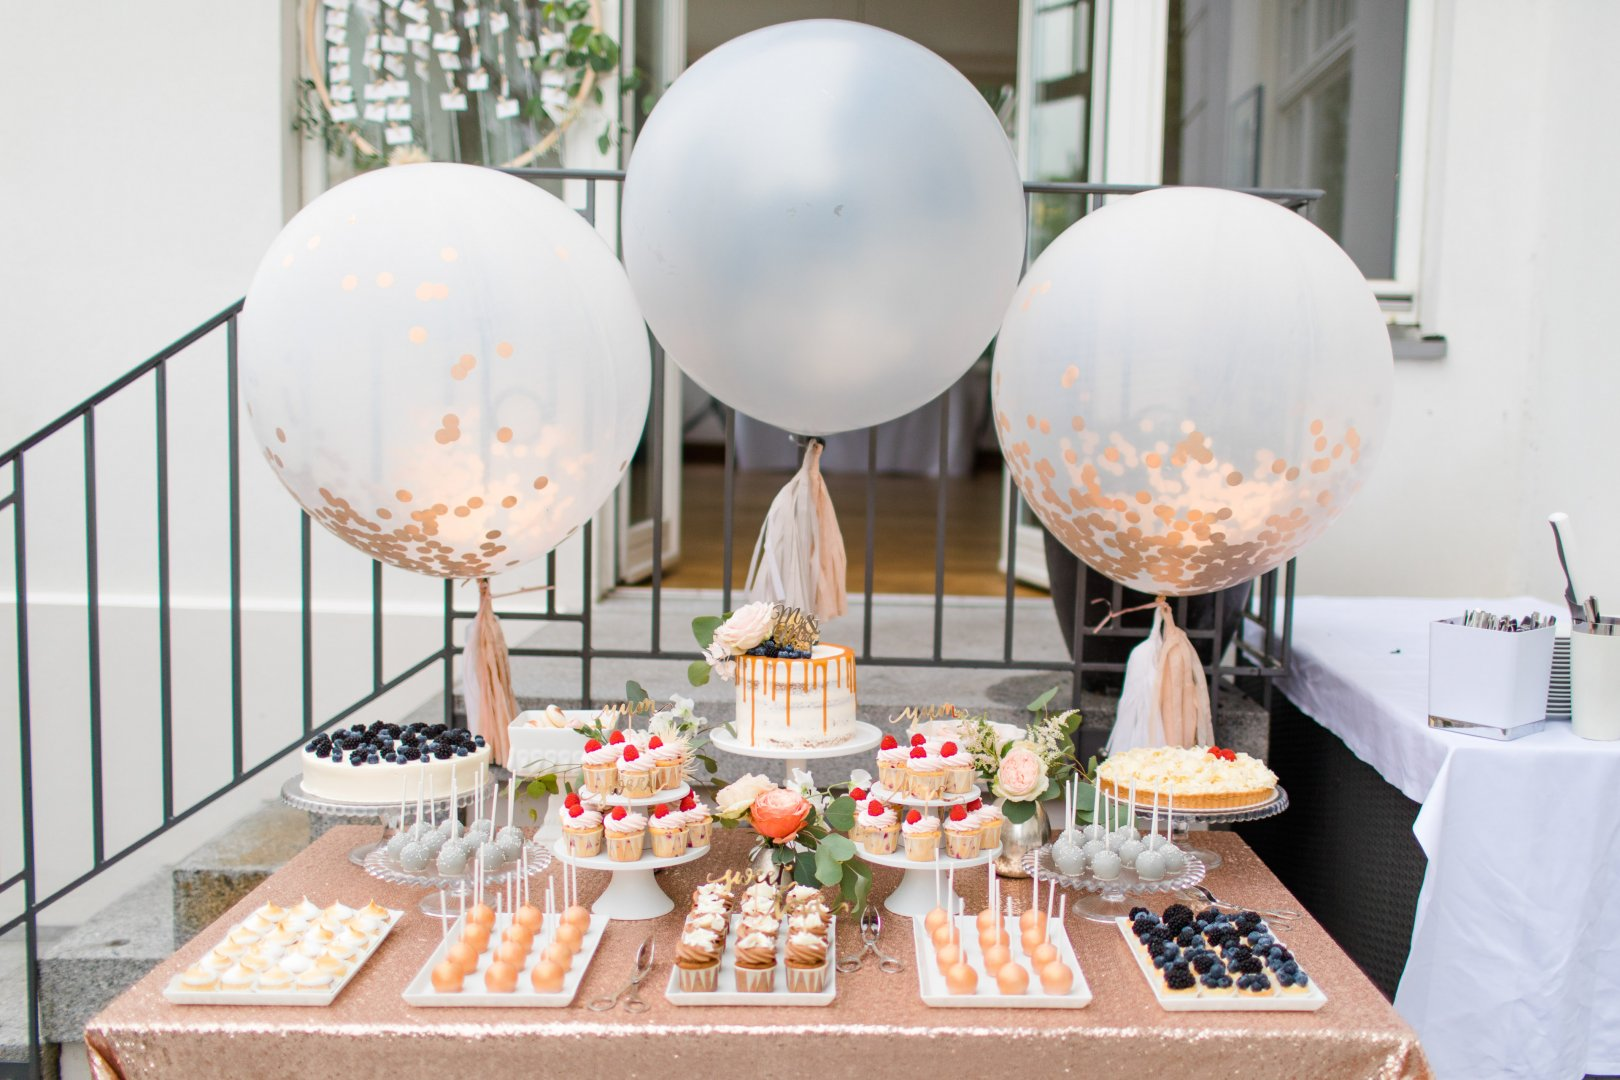 Table Pink Party Balloon Centrepiece Room Brunch Baby shower Interior design Party supply Peach Furniture Birthday Food Hot air balloon Tableware